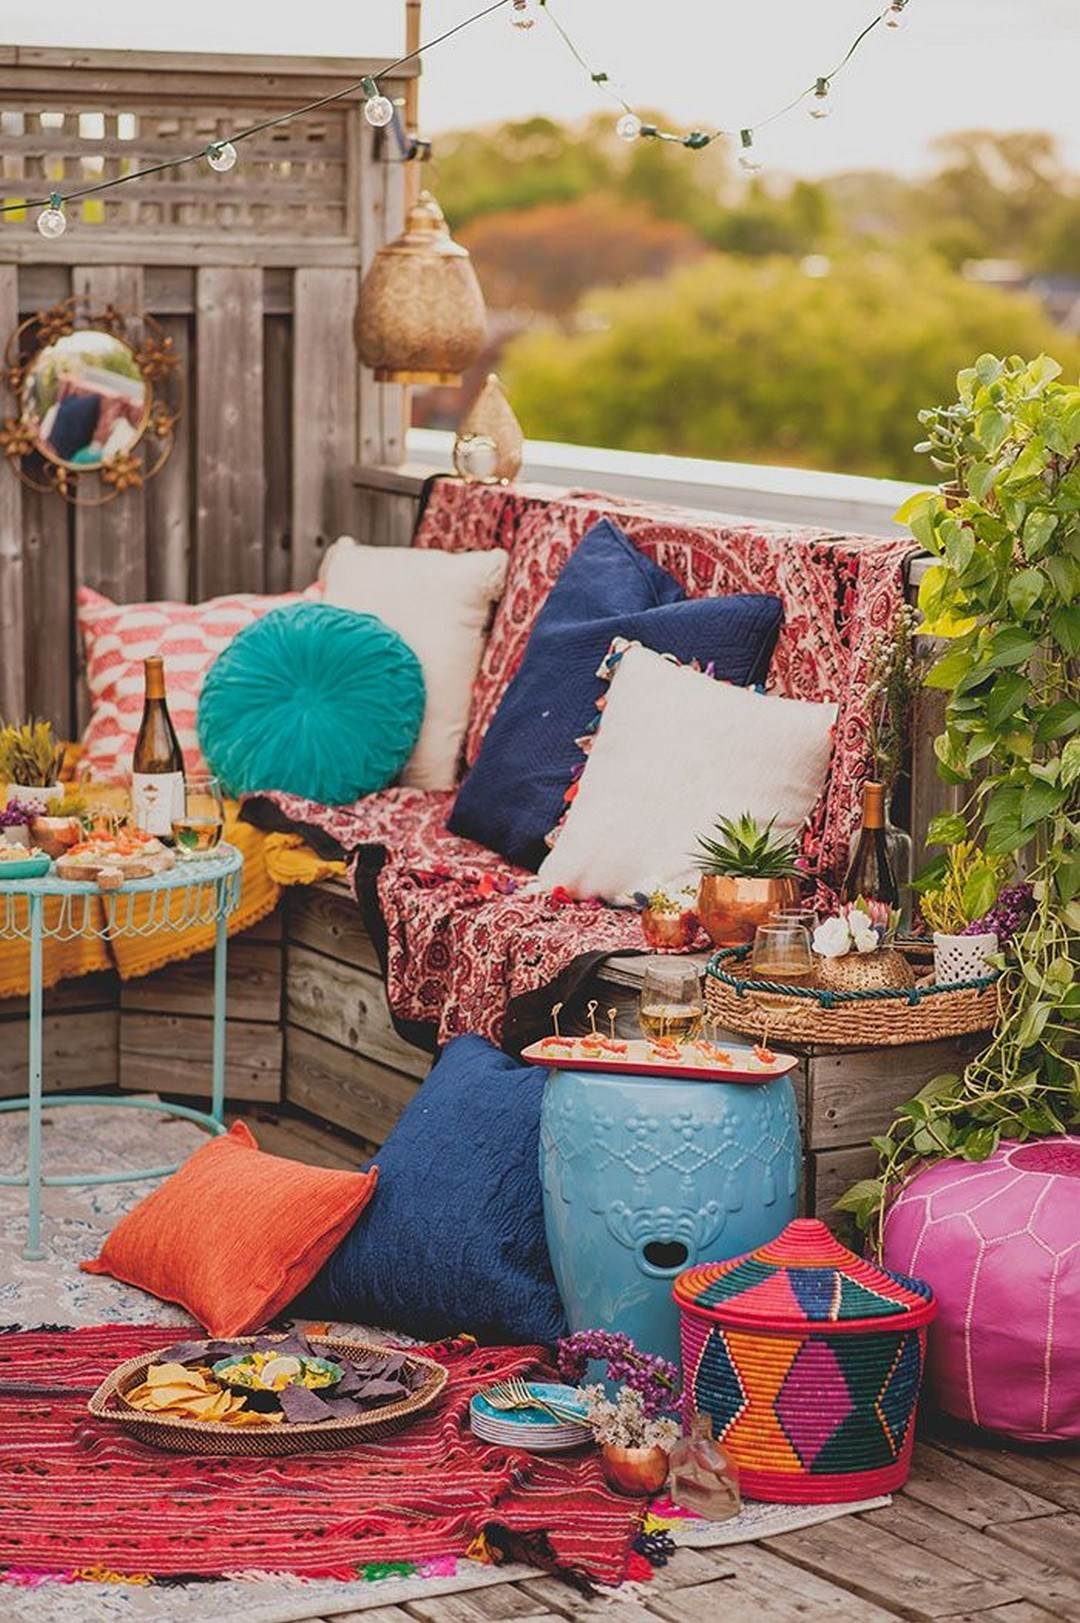 75 Charming Morocco-Style Patio Designs